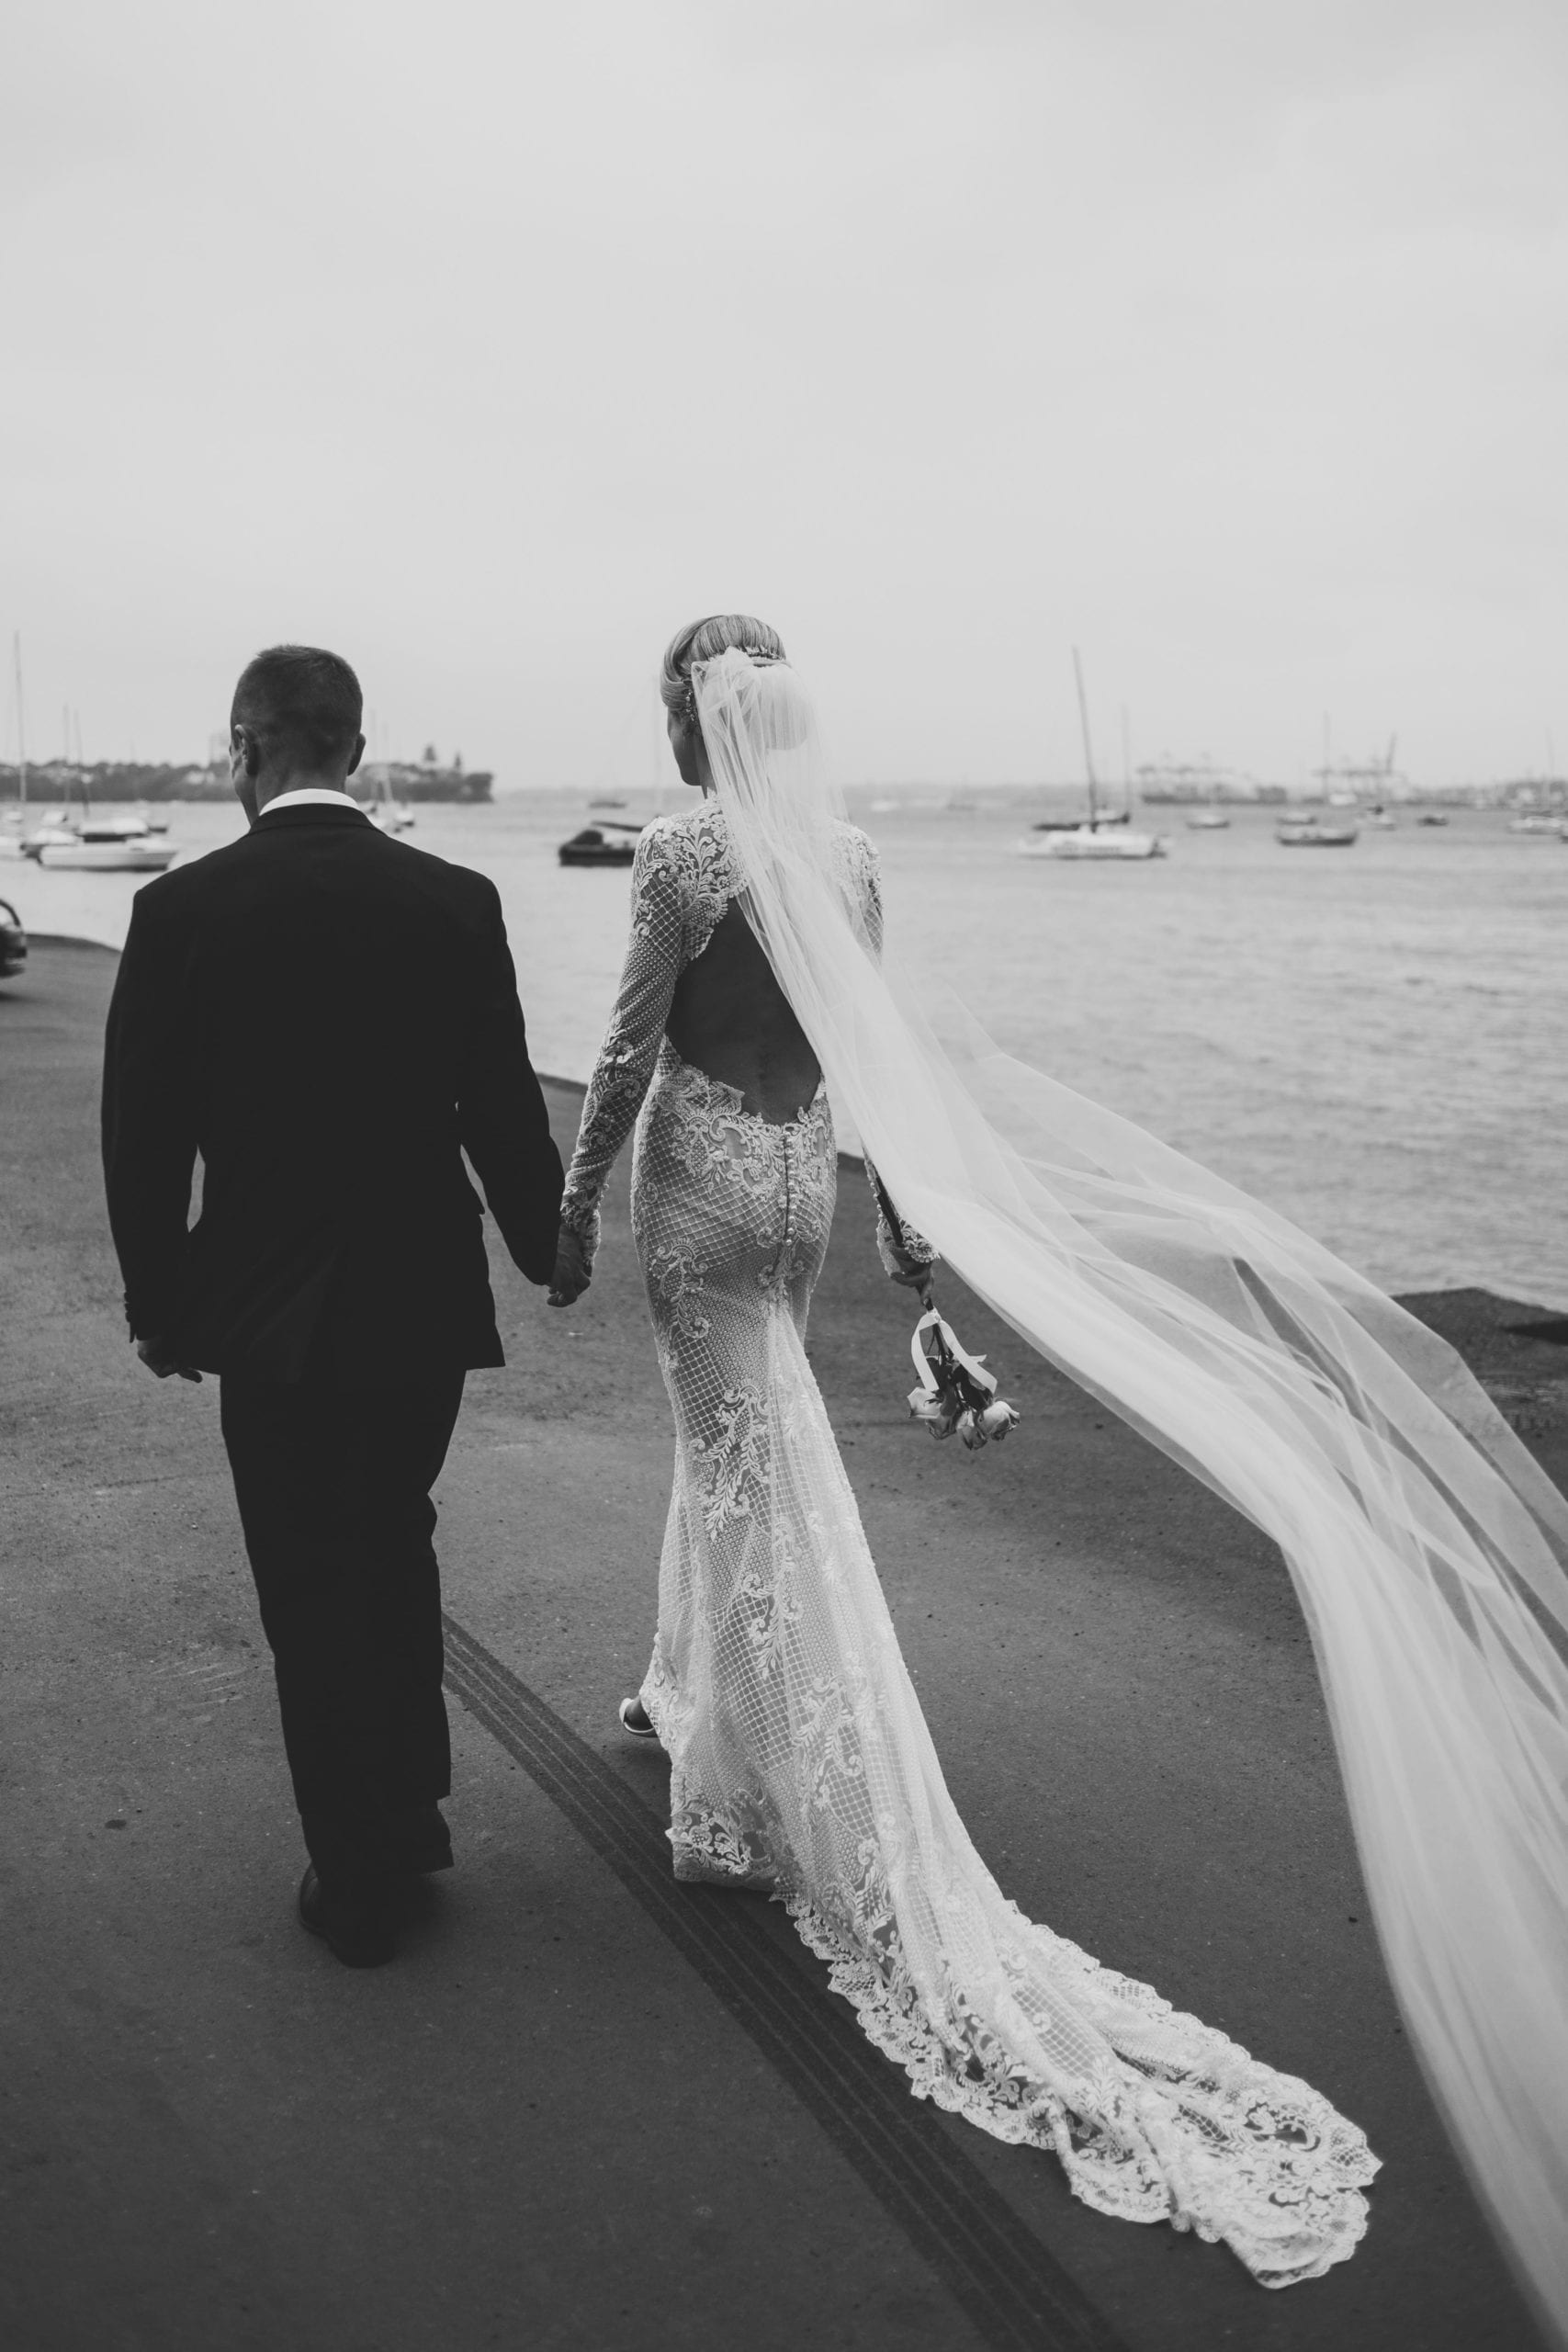 Real Weddings | Vinka Design | Real Brides Wearing Vinka Gowns | Hayley and Tonchi walking away next to the sea in black and white